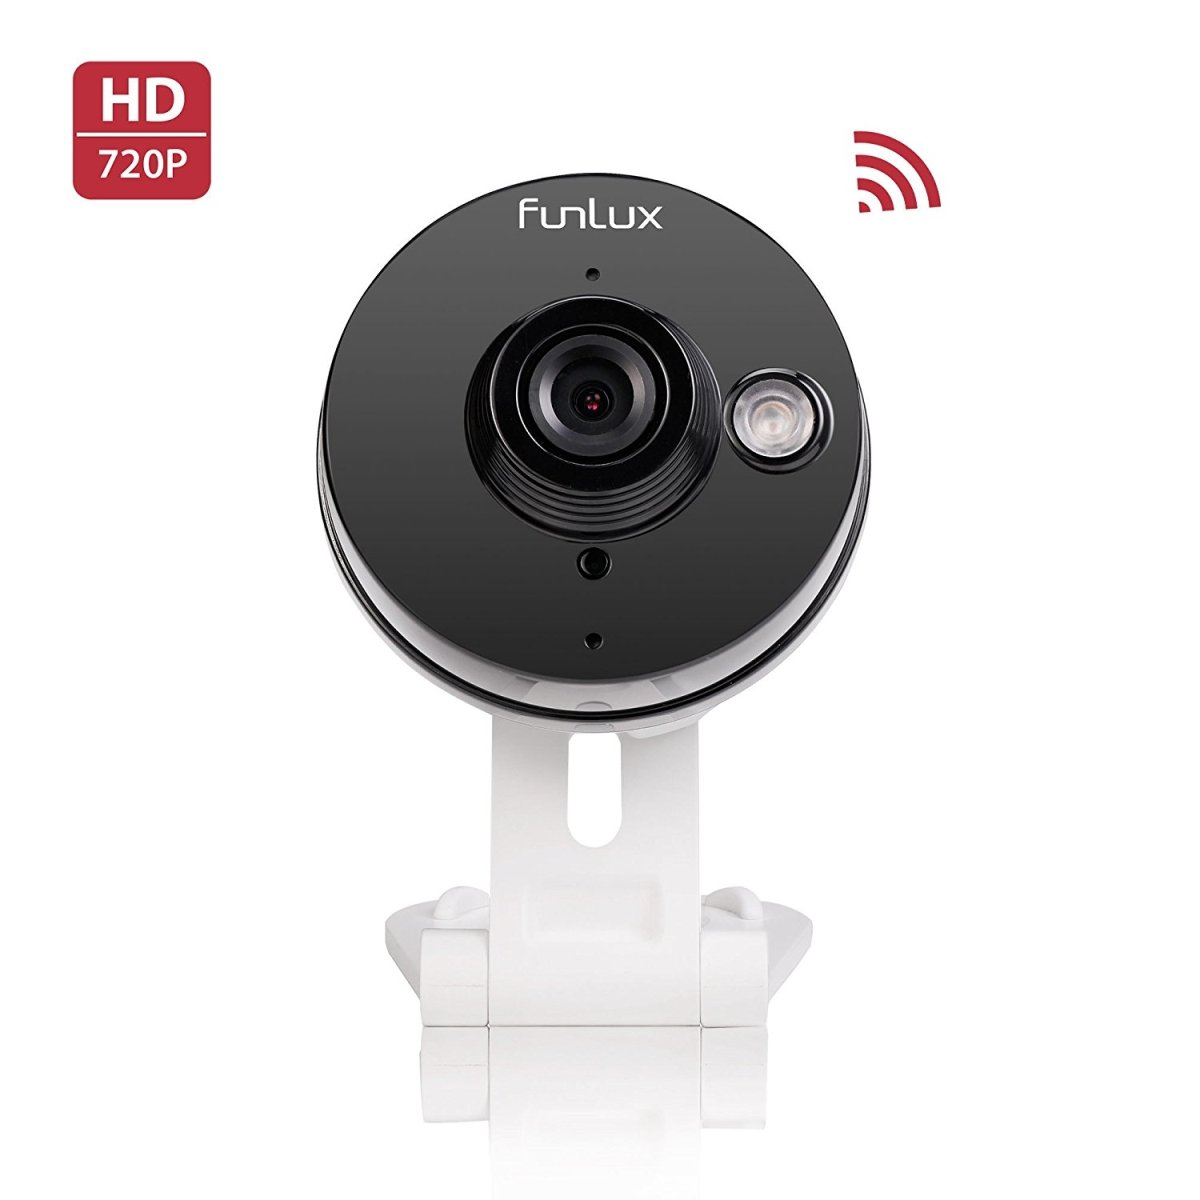 Amazon.com : Funlux Mini WiFi Megapixel 720P HD Wireless IP ...